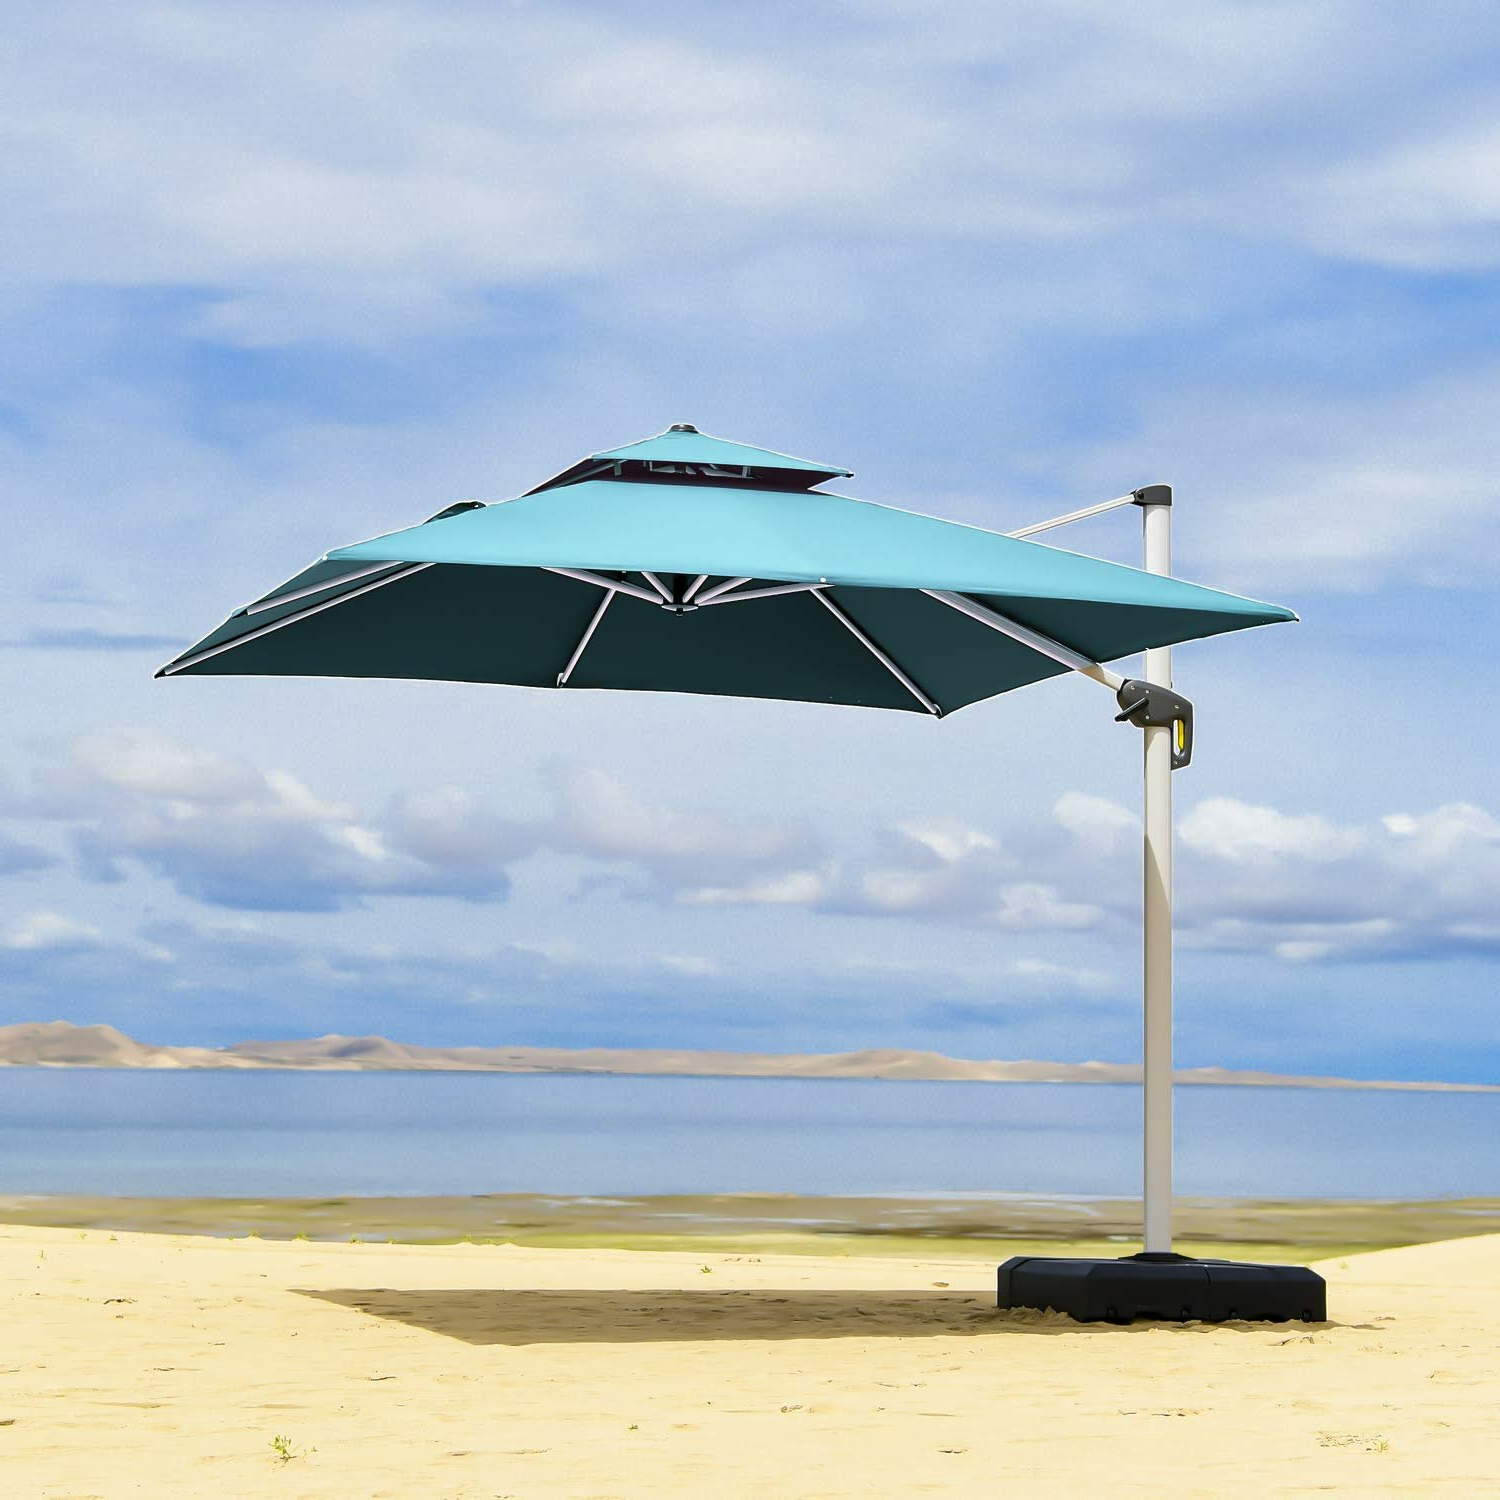 2019 Freeport Park Maidste 9' Square Cantilever Umbrella Intended For Maidste Square Cantilever Umbrellas (Gallery 8 of 20)